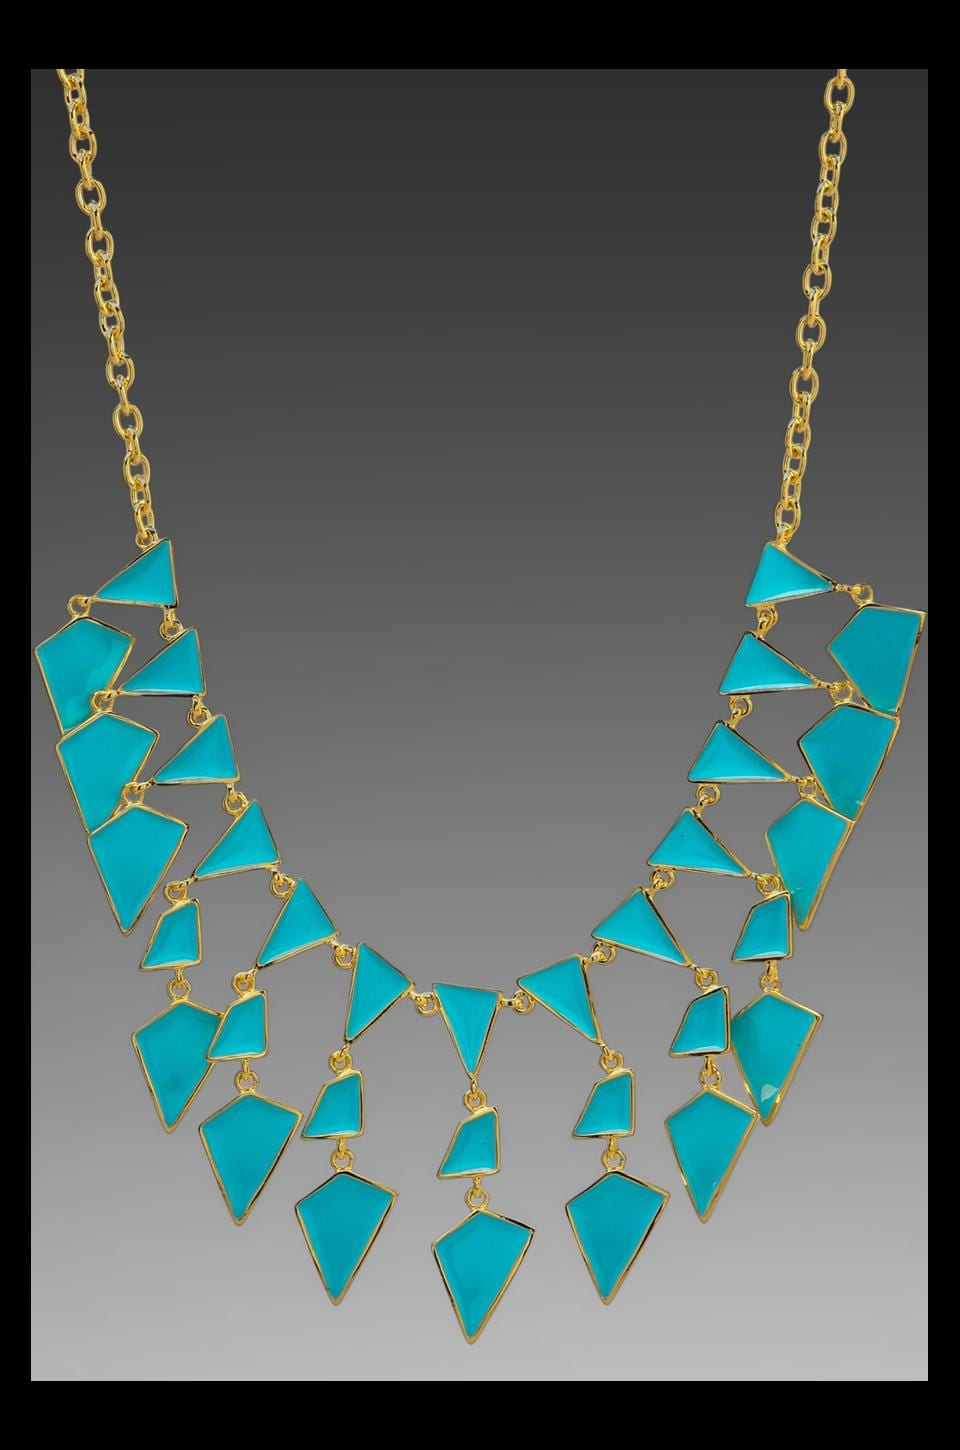 Kenneth Jay Lane Enamel Geo Drops Necklace in Turquoise